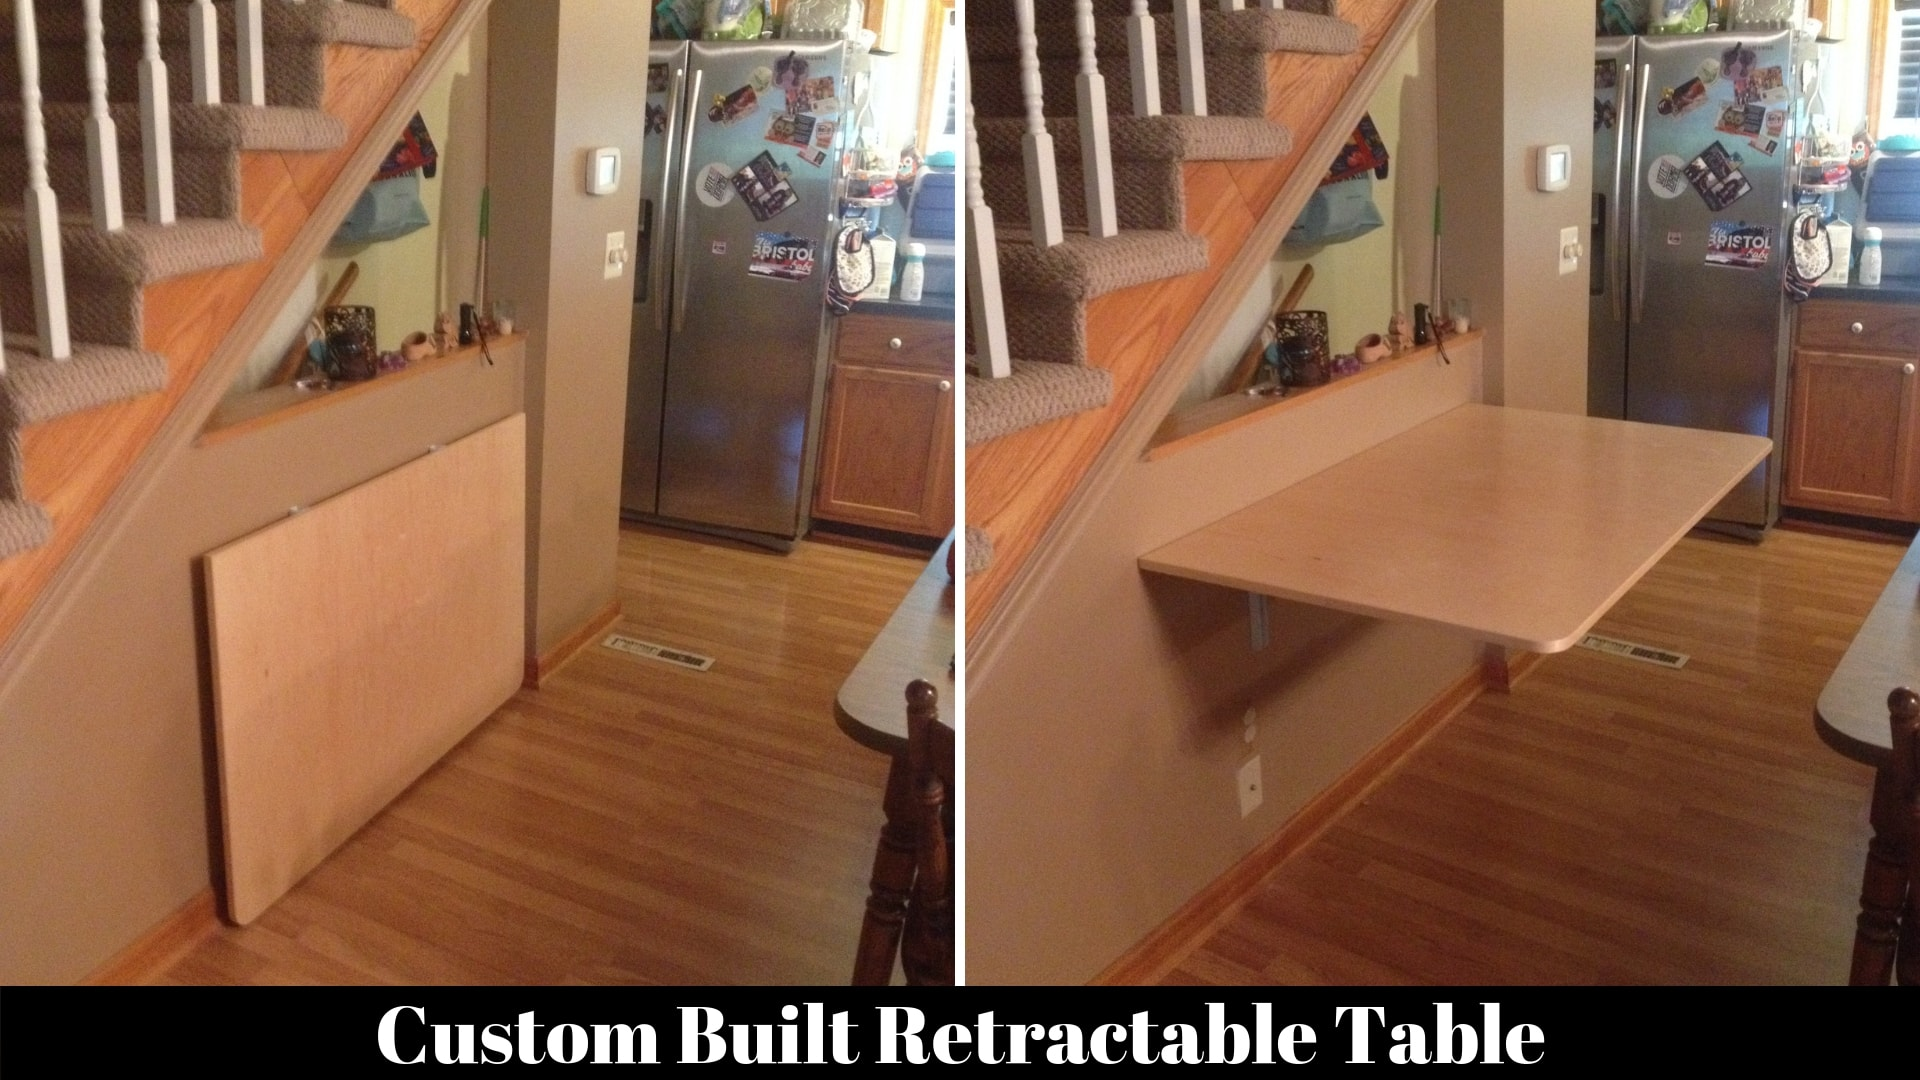 Custom Built Retractable Table-min.jpg